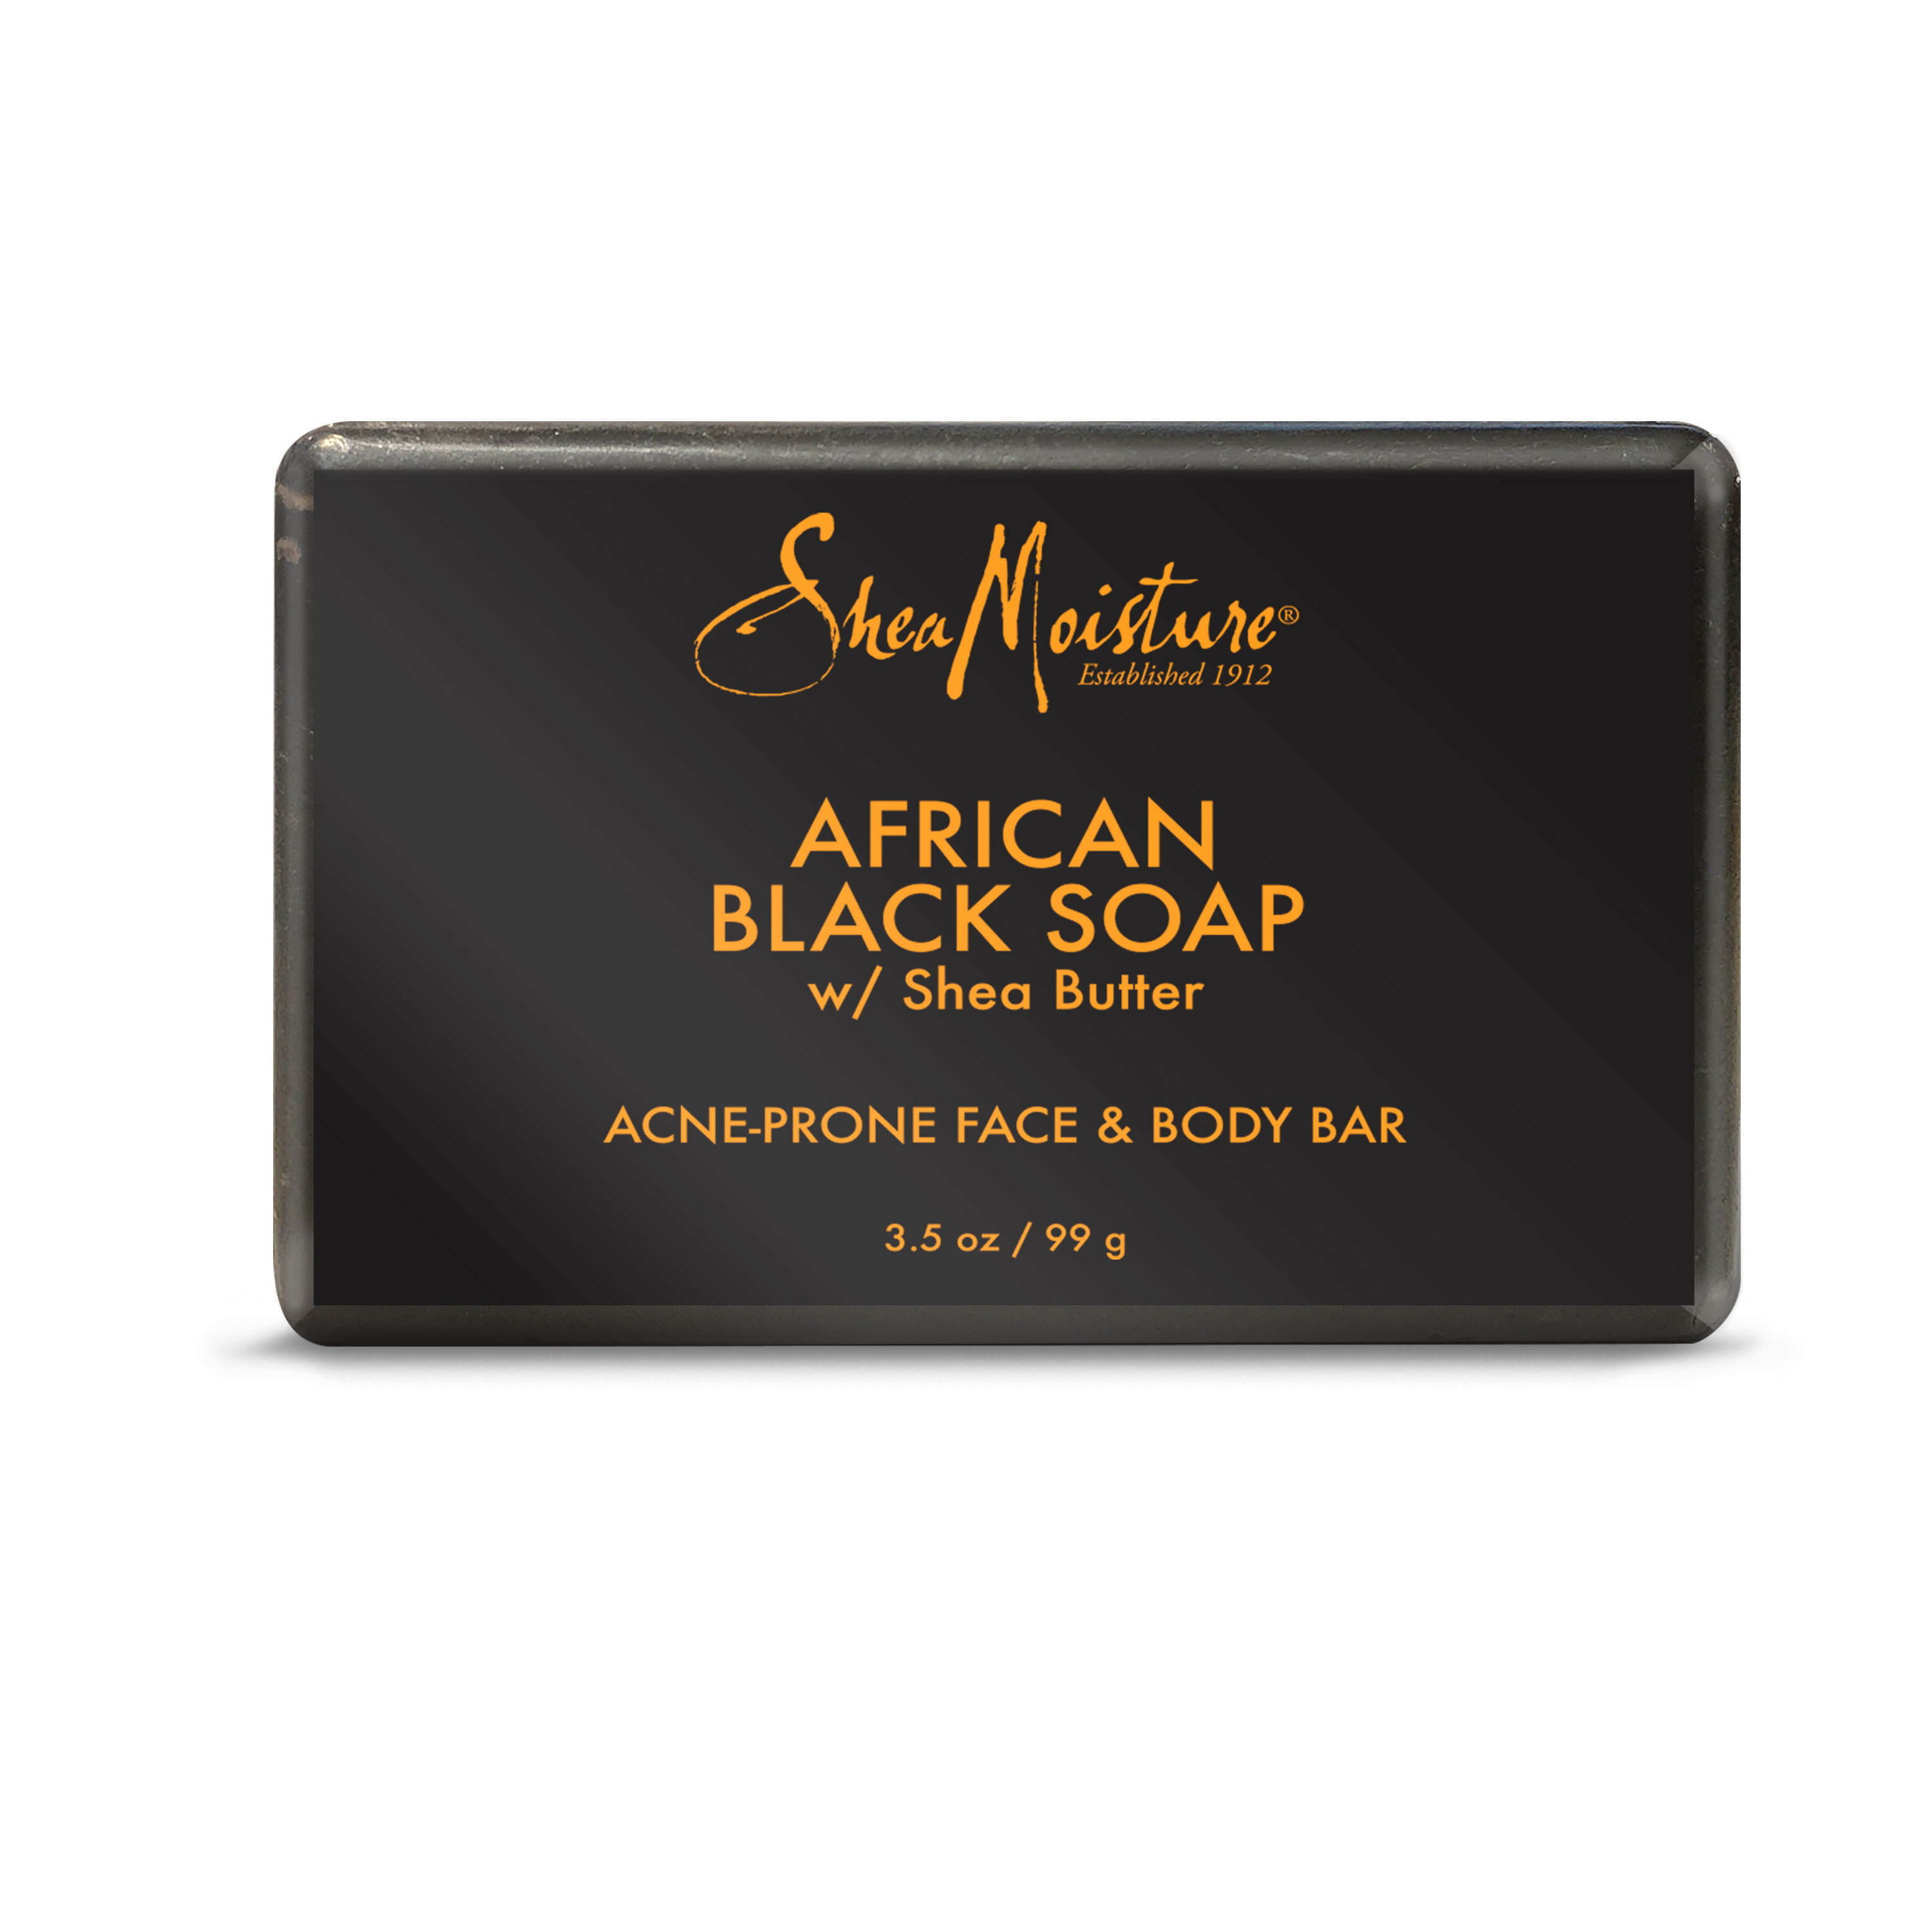 African Black Soap - Soothes and Refreshes Blemish-Prone Skin with Aloe and Organic Shea Butter - Sulfate-Free with Natural and Organic Ingredients - Clarifies Blemish-Prone Skin (3.5 oz)